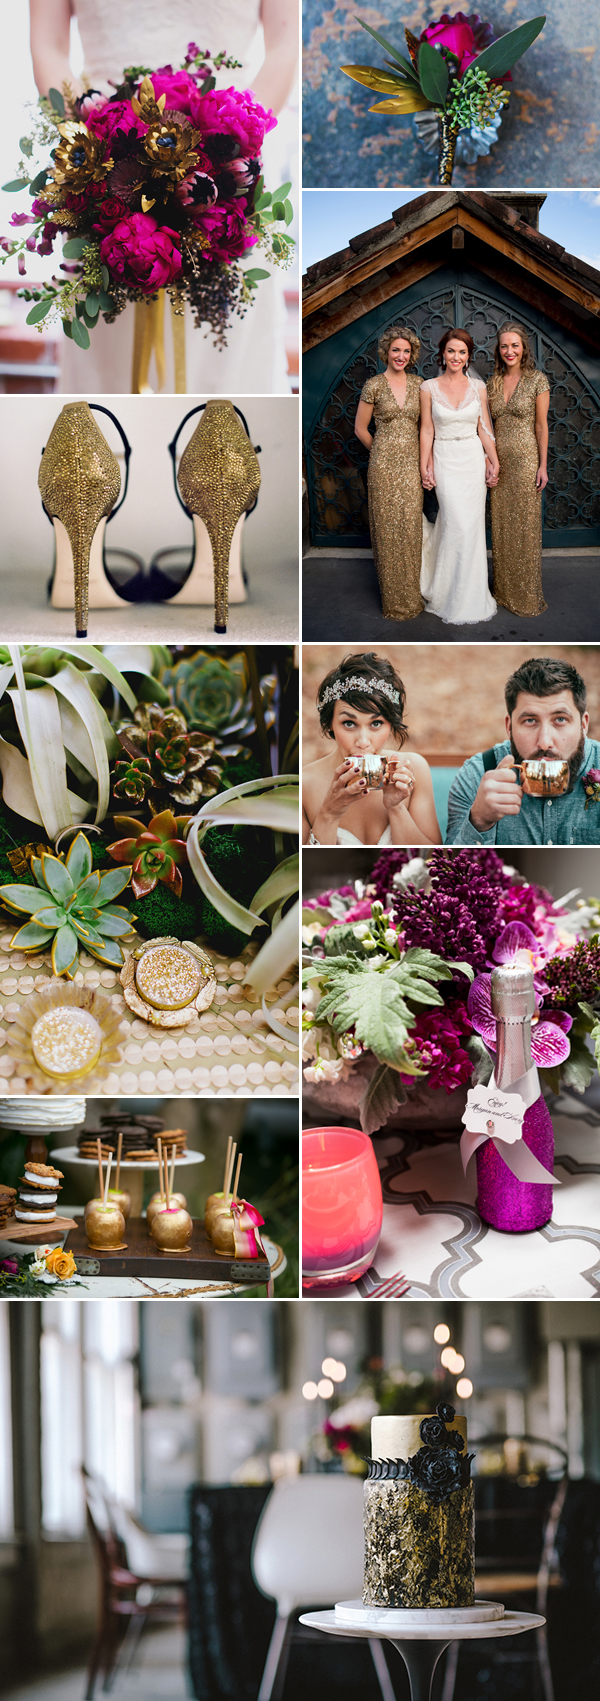 magenta and gold wedding color palette inspiration board | via junebugweddings.com